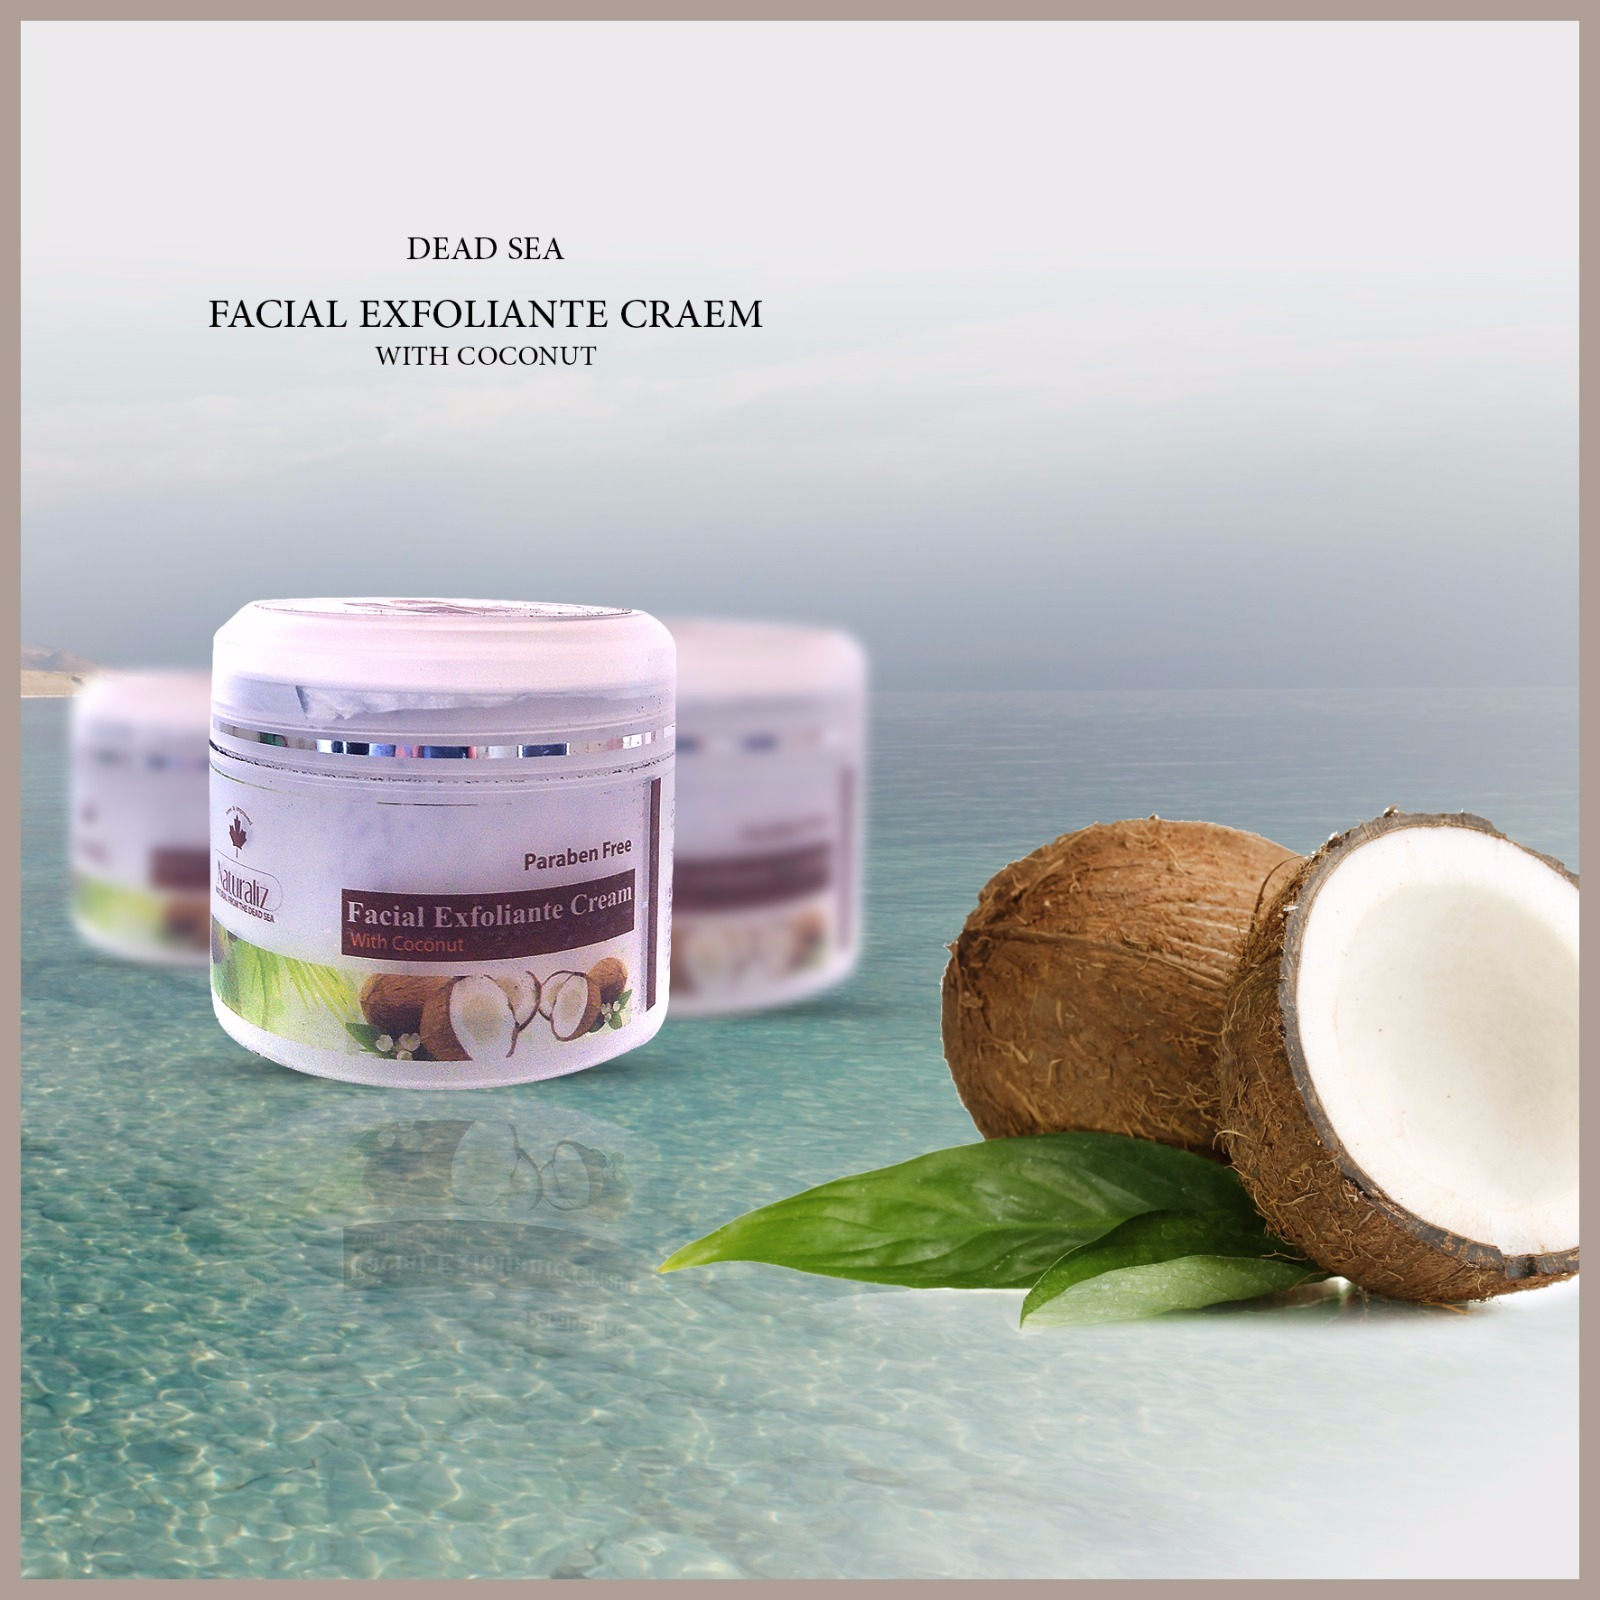 Facial Exfoliante Cream With Coconut